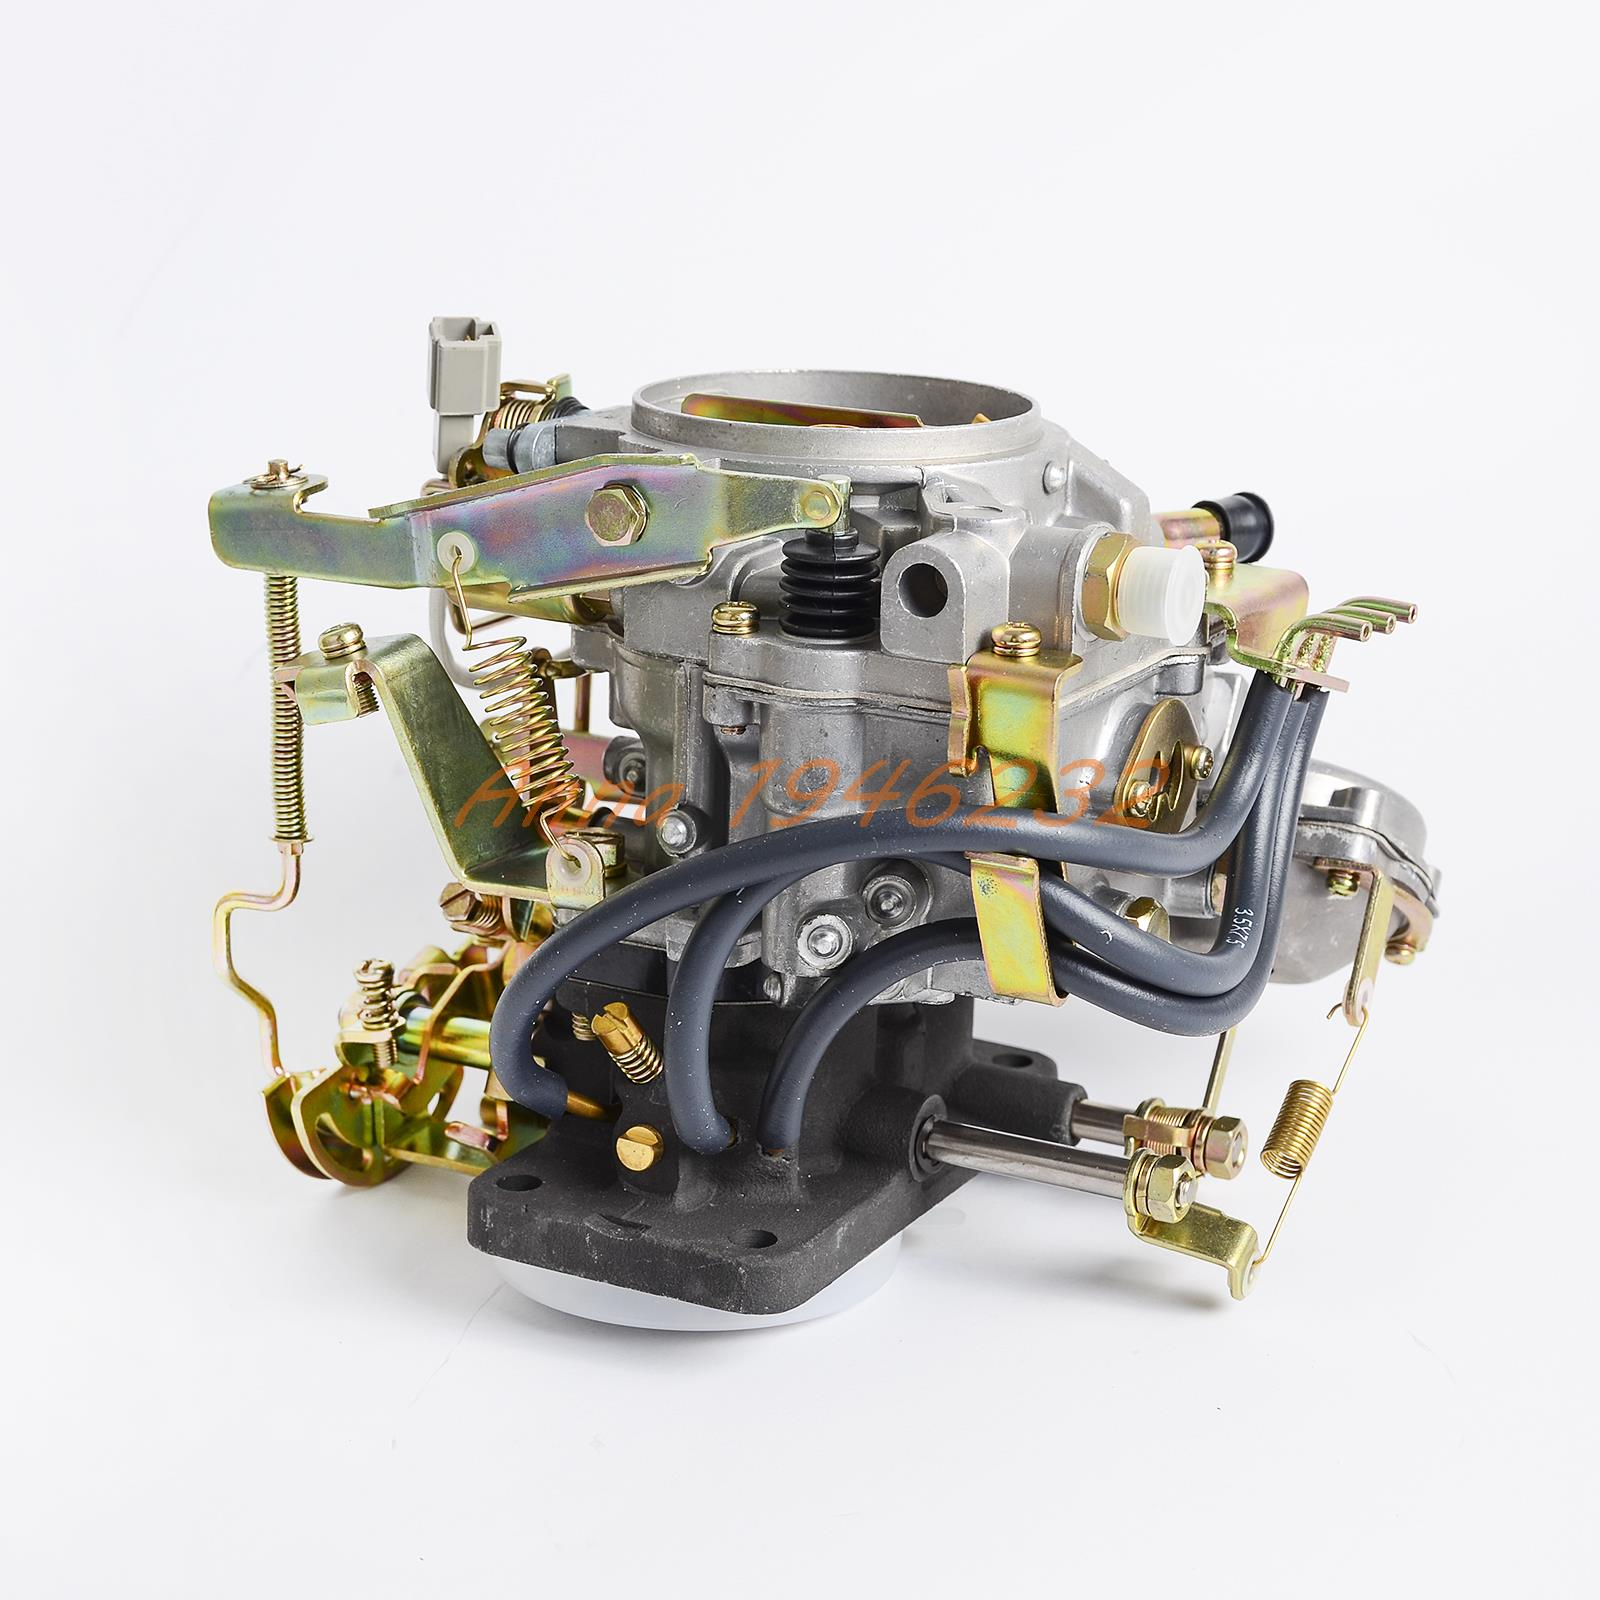 New New Carburetor fits for TOYOTA 3F LAND CRUISER 1984-1992 Carby 21100-61360<br><br>Aliexpress